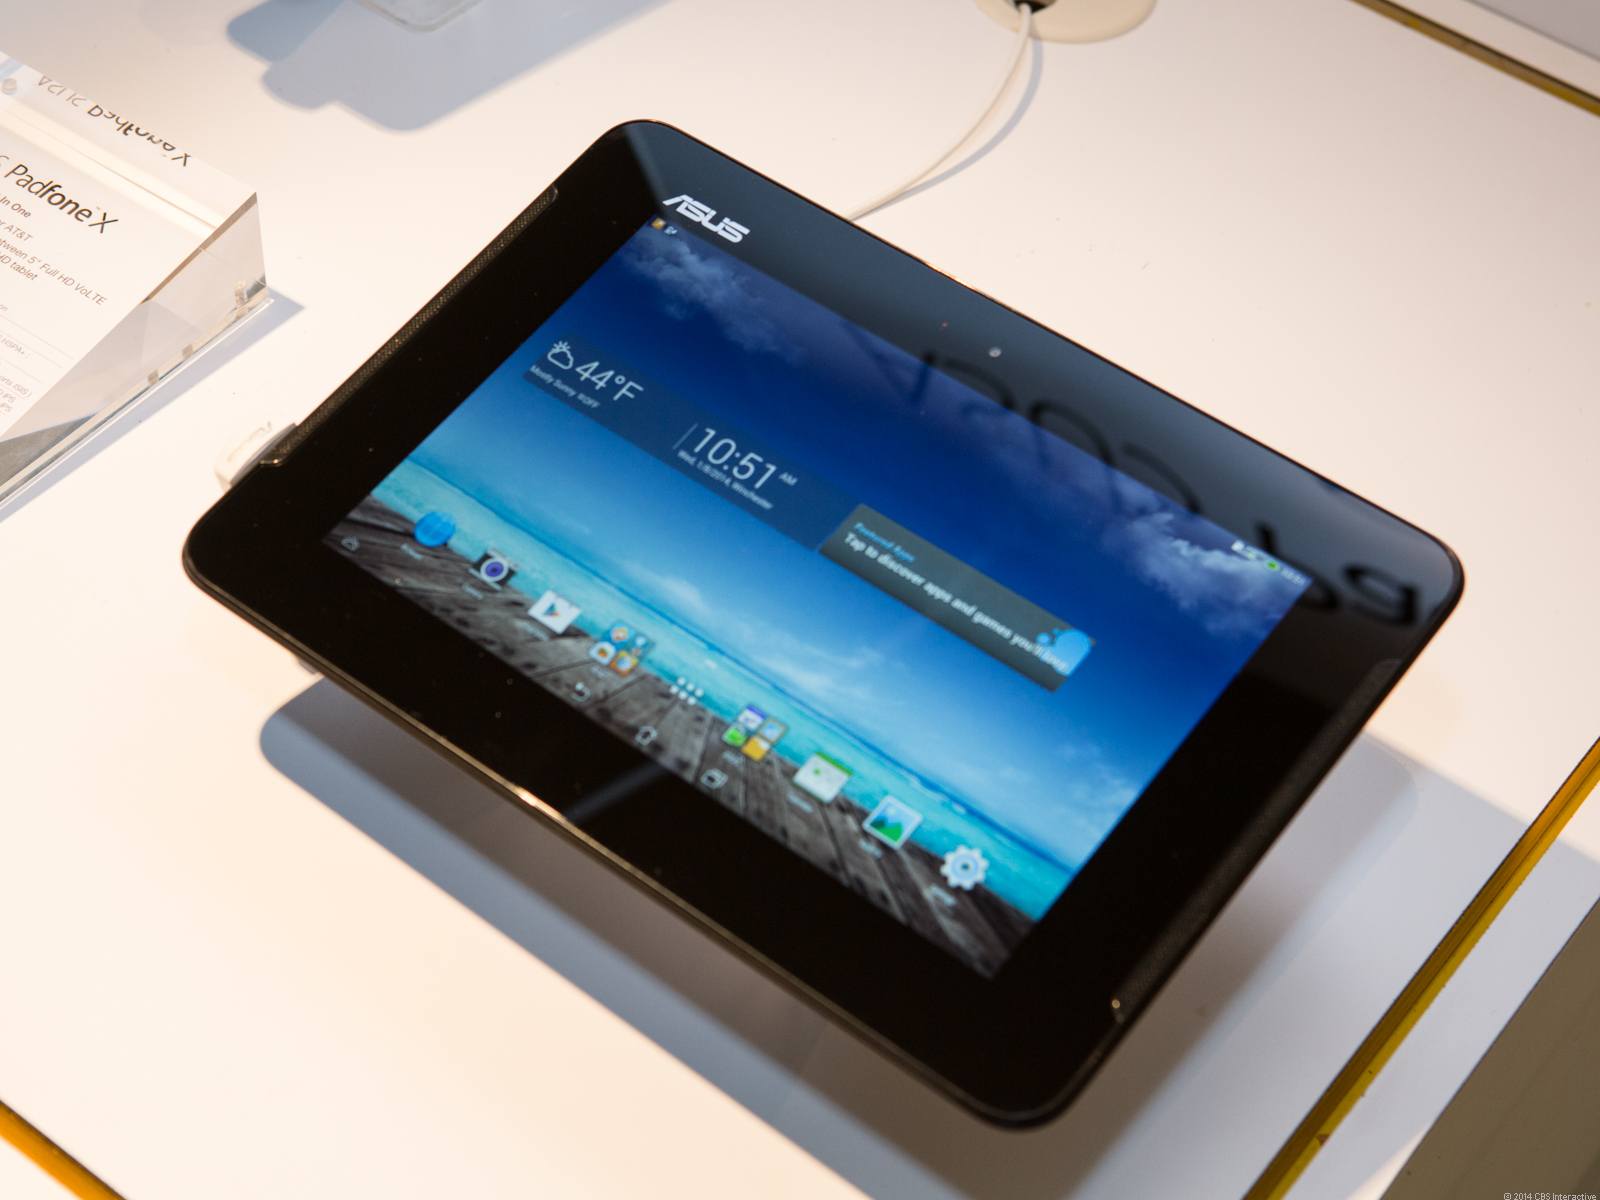 AT&T's Asus PadFone X